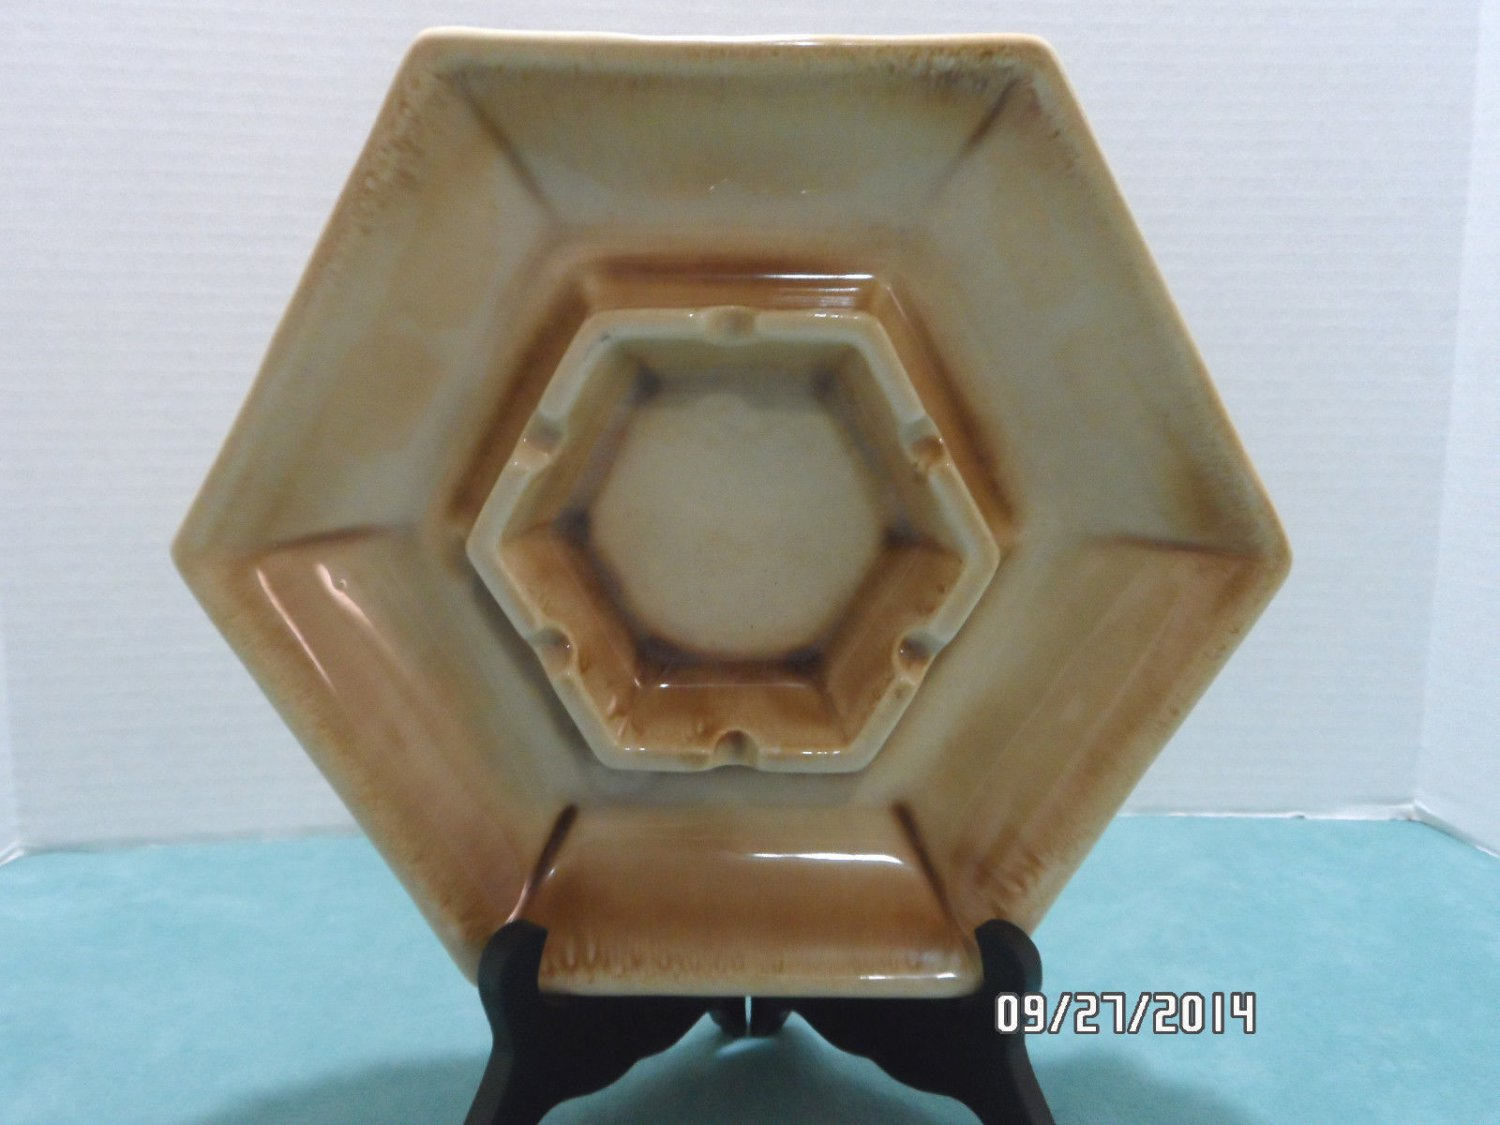 Ashtray by Haeger Tan Ceramic made in the USA